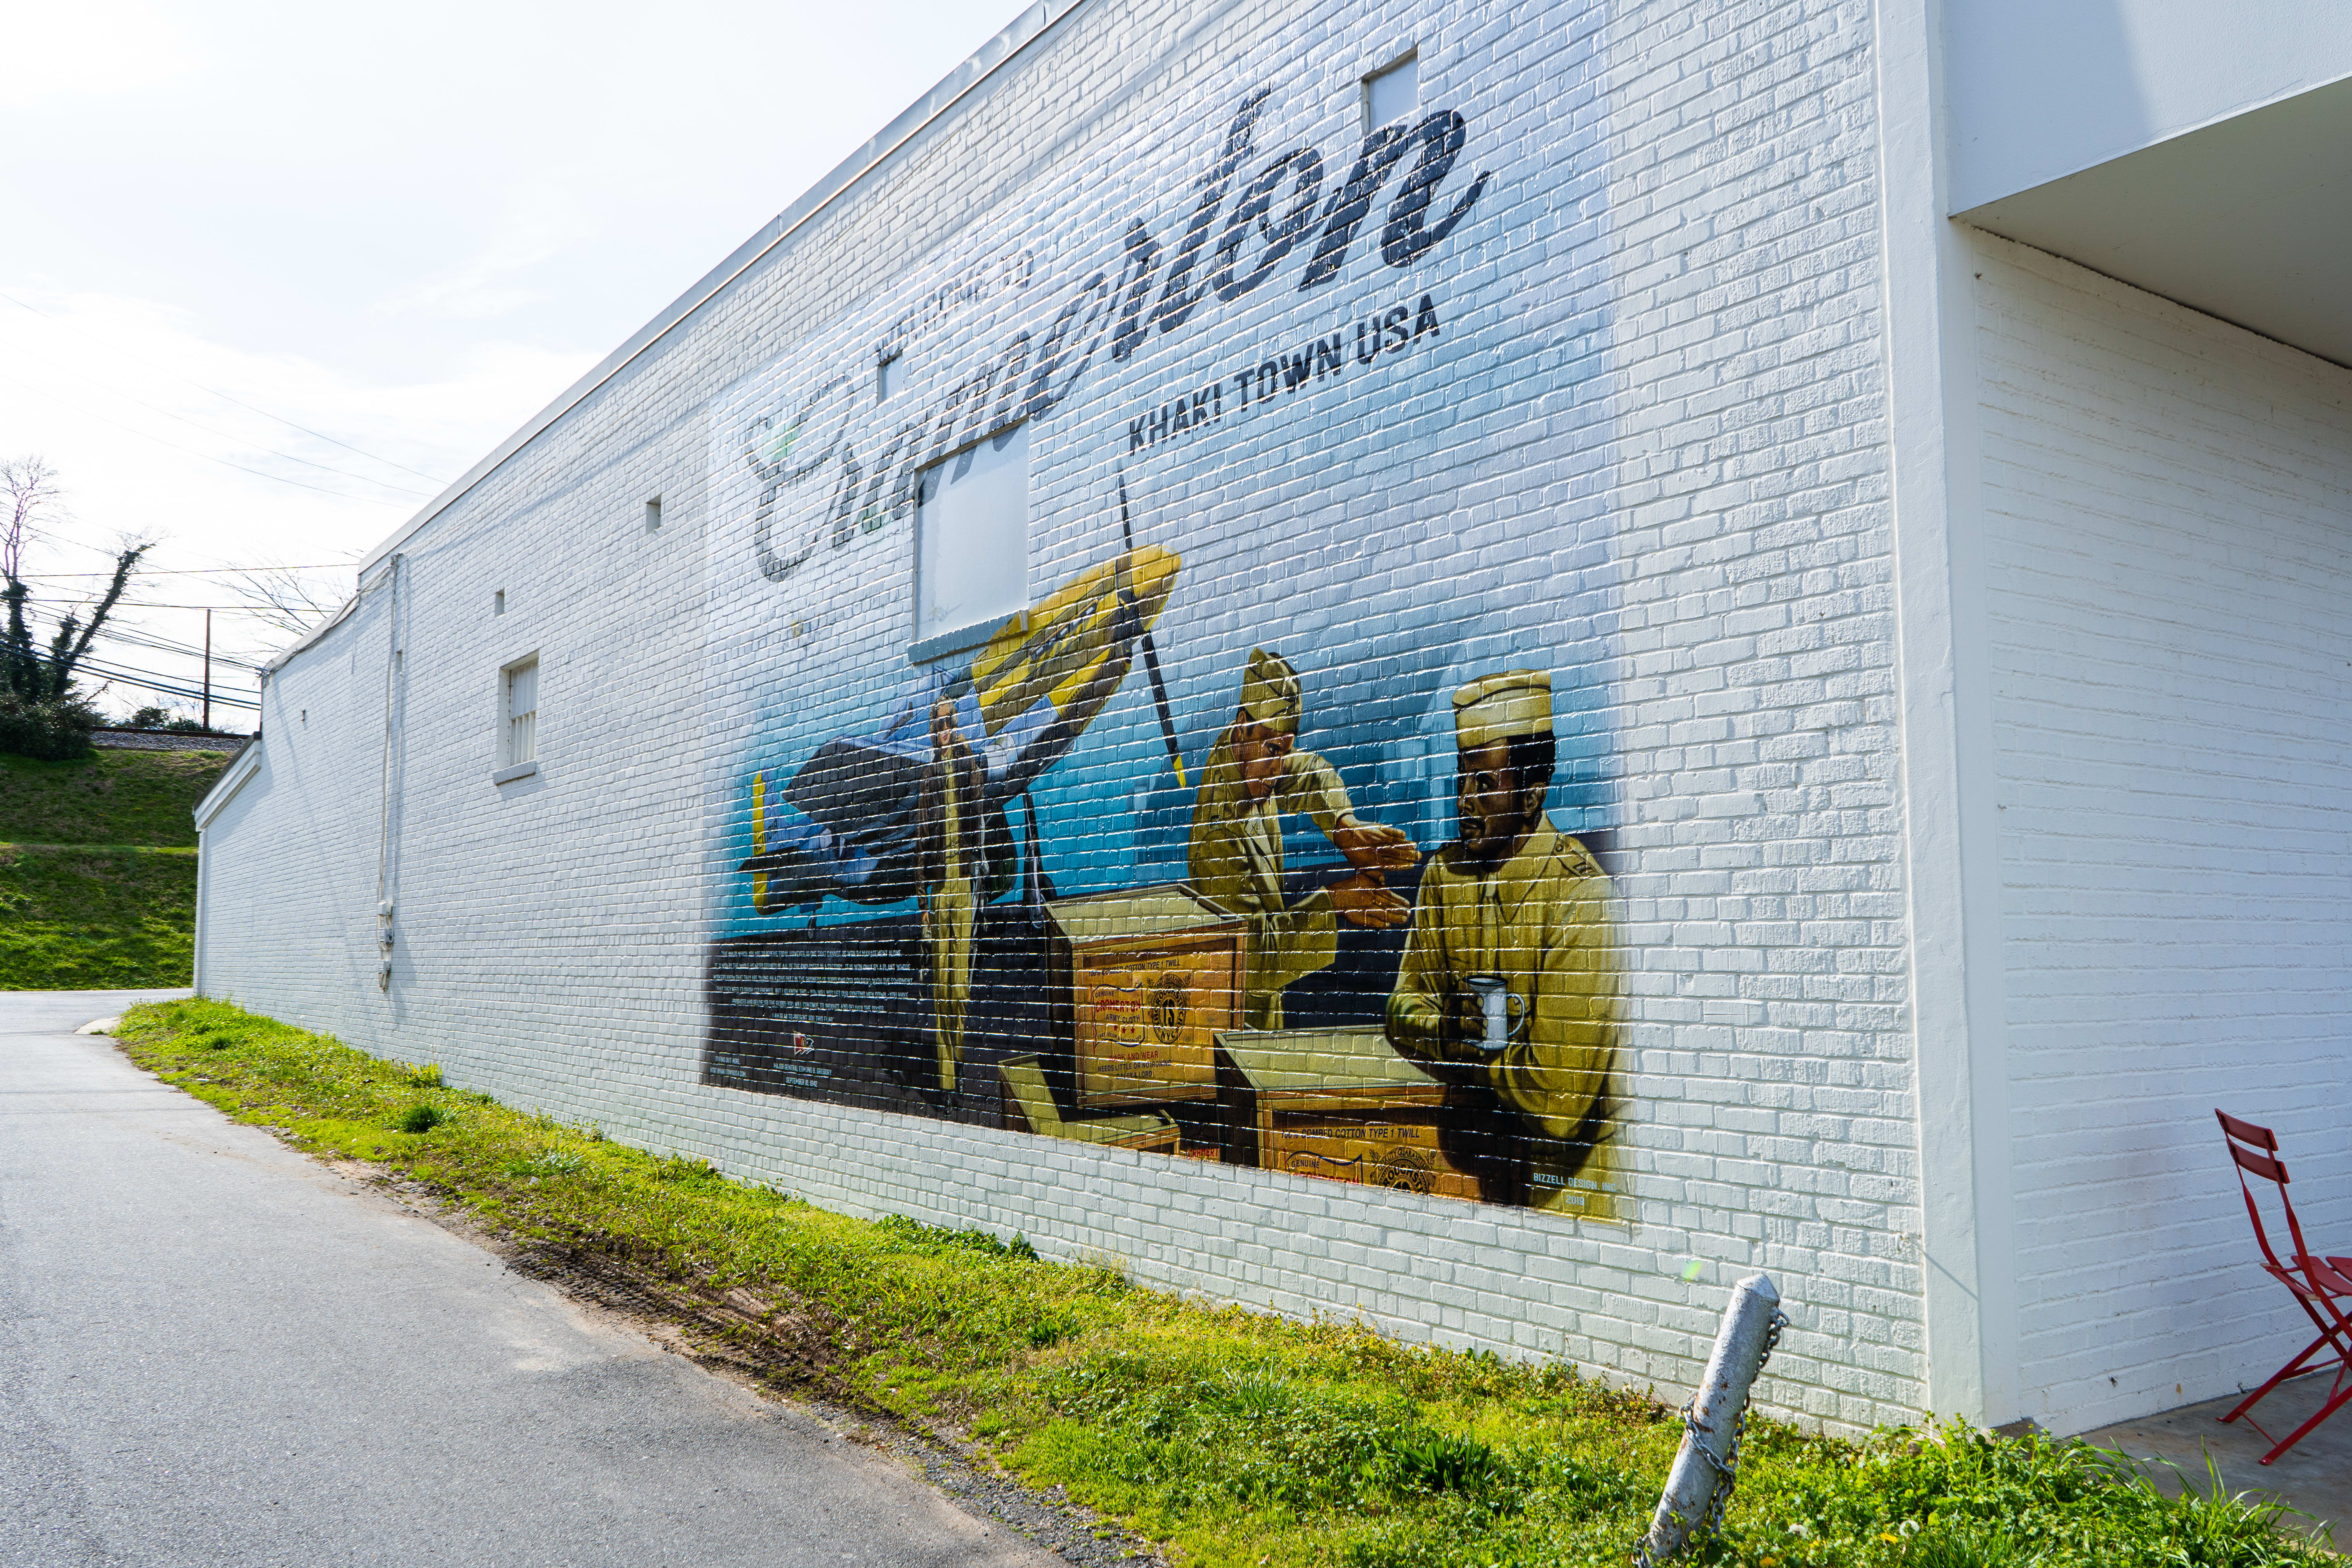 mural on the side of building